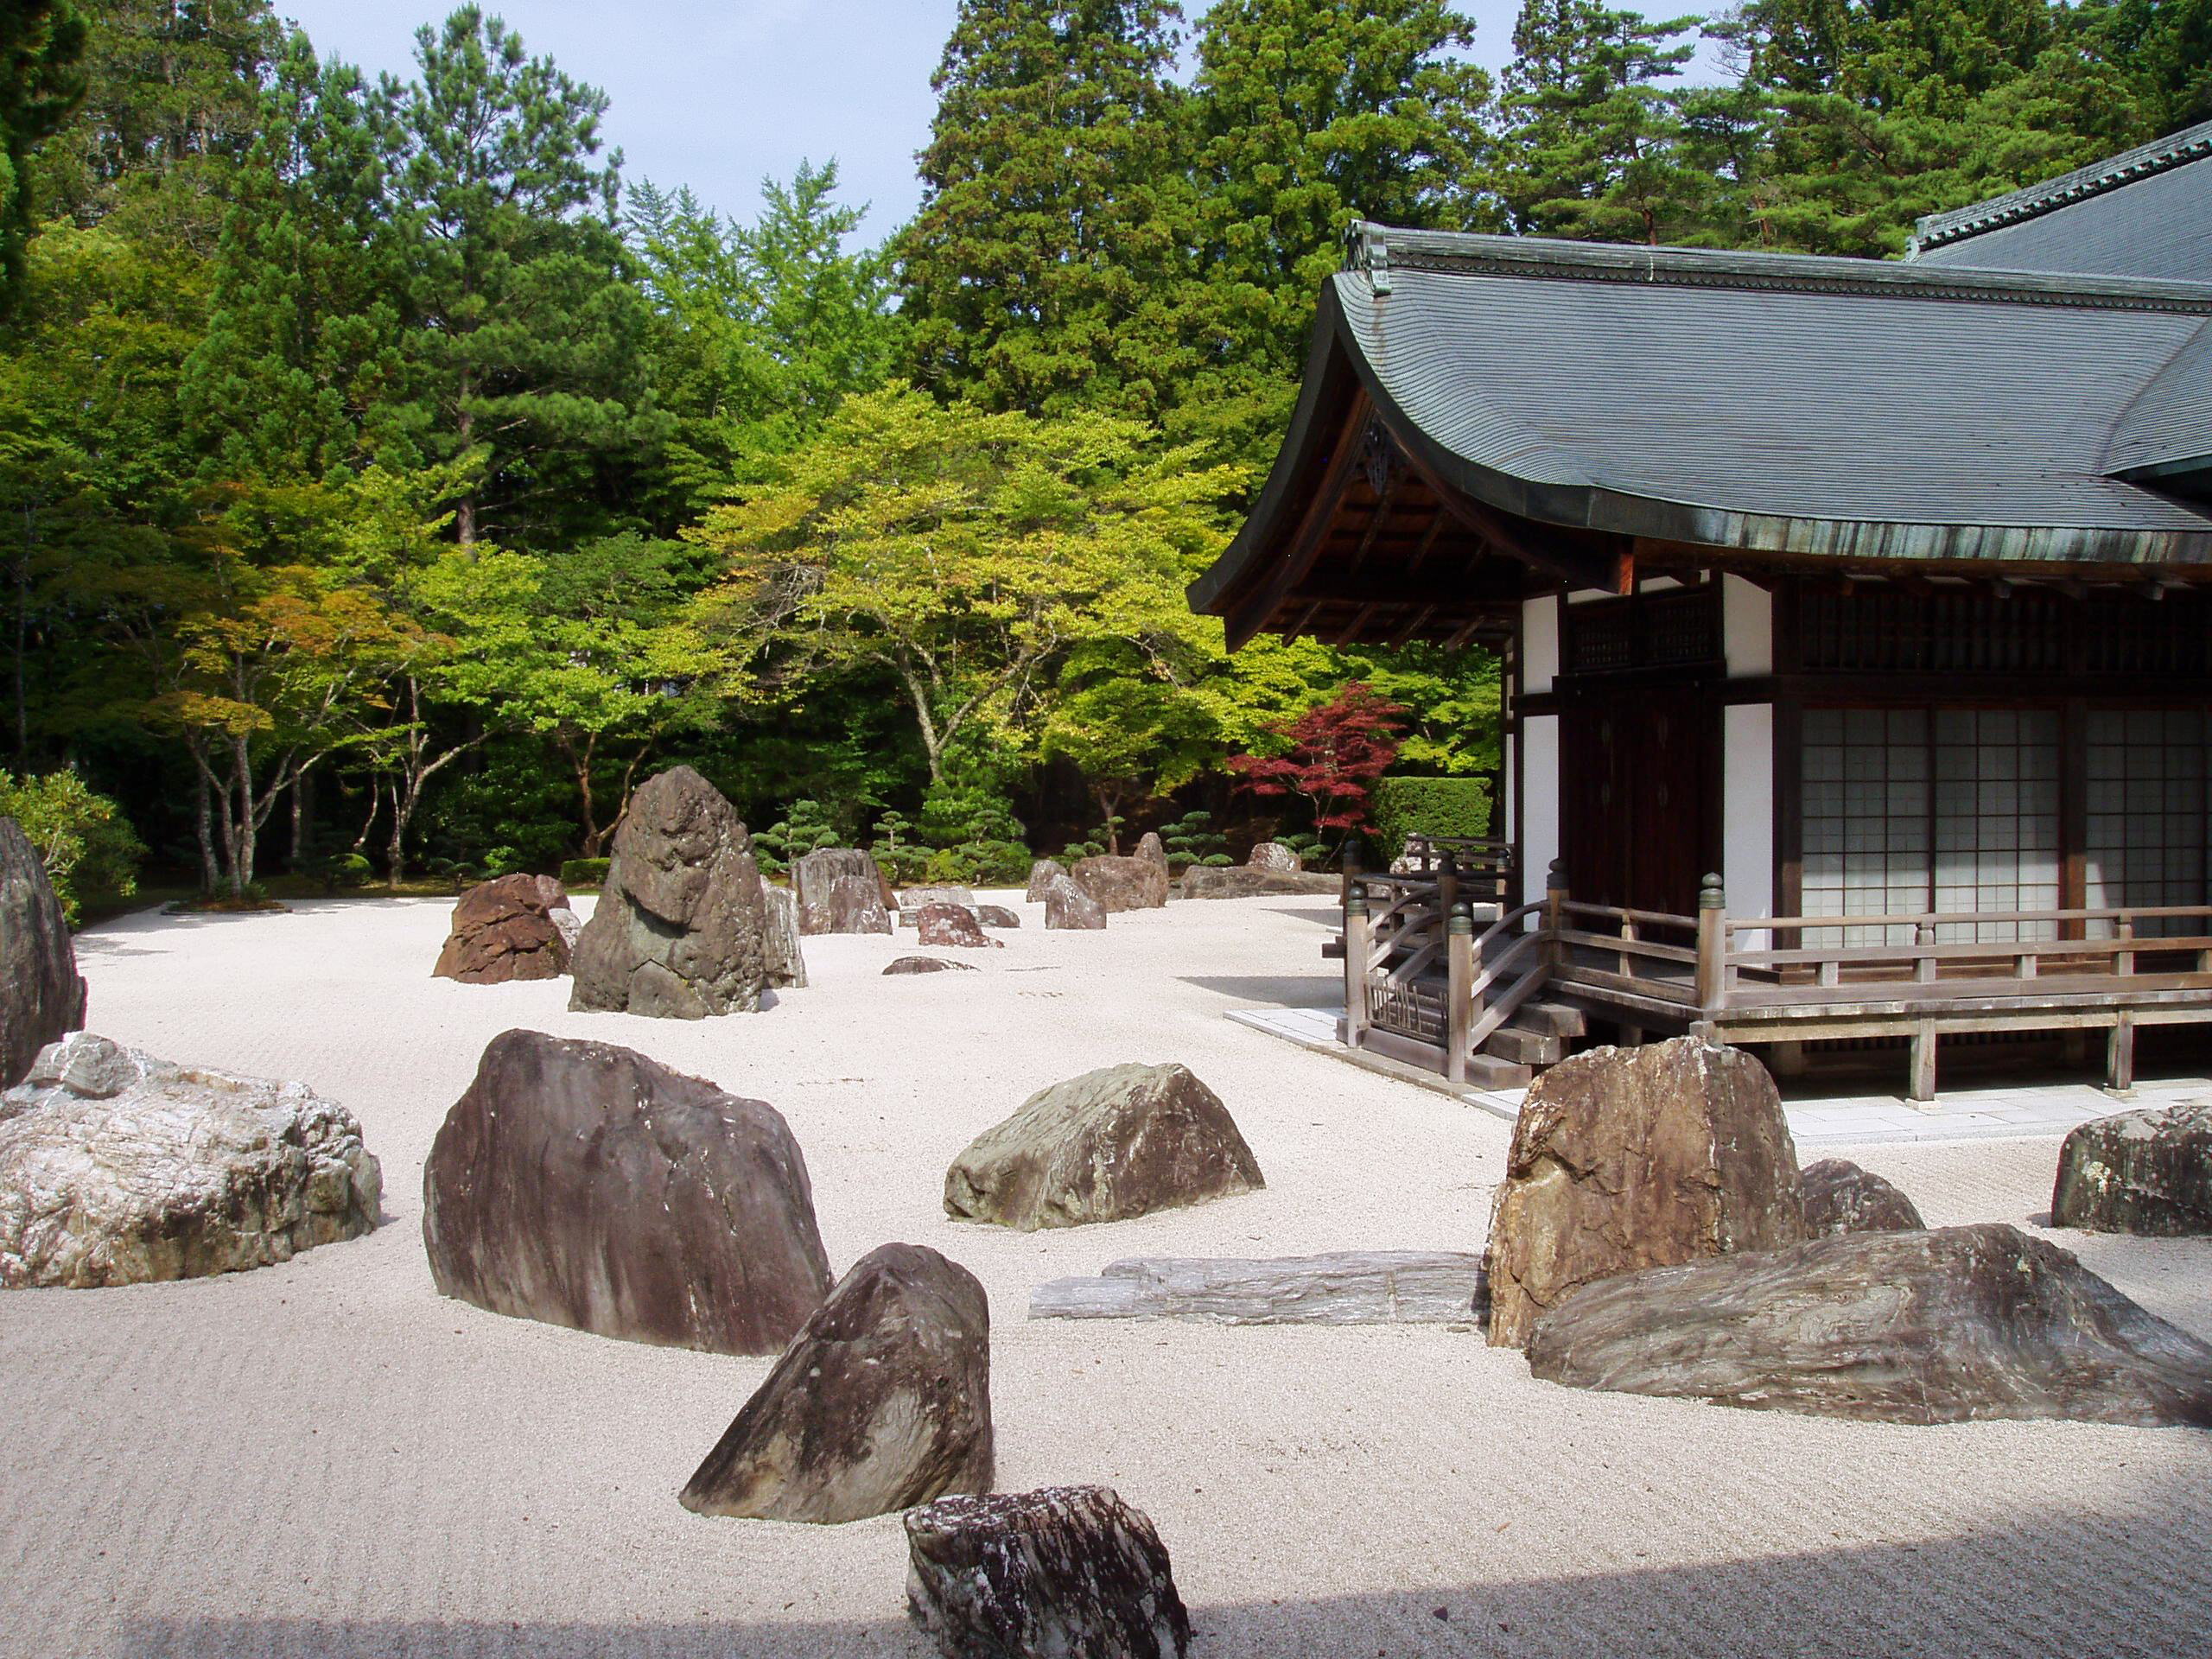 File:Kongobuji Temple, Koyasan, Japan - Banryutei rock ...